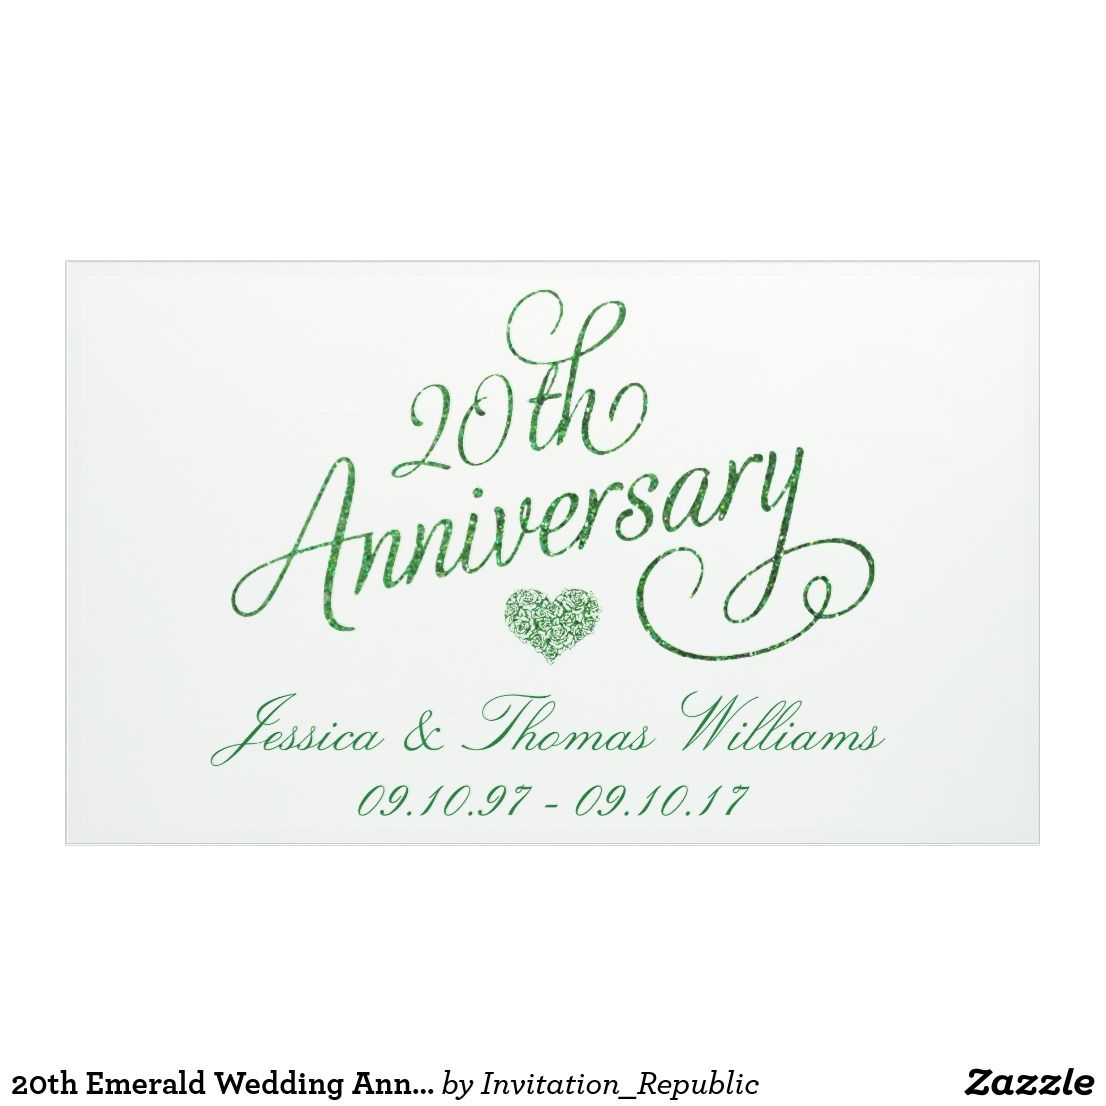 20th Emerald Wedding Anniversary Banner